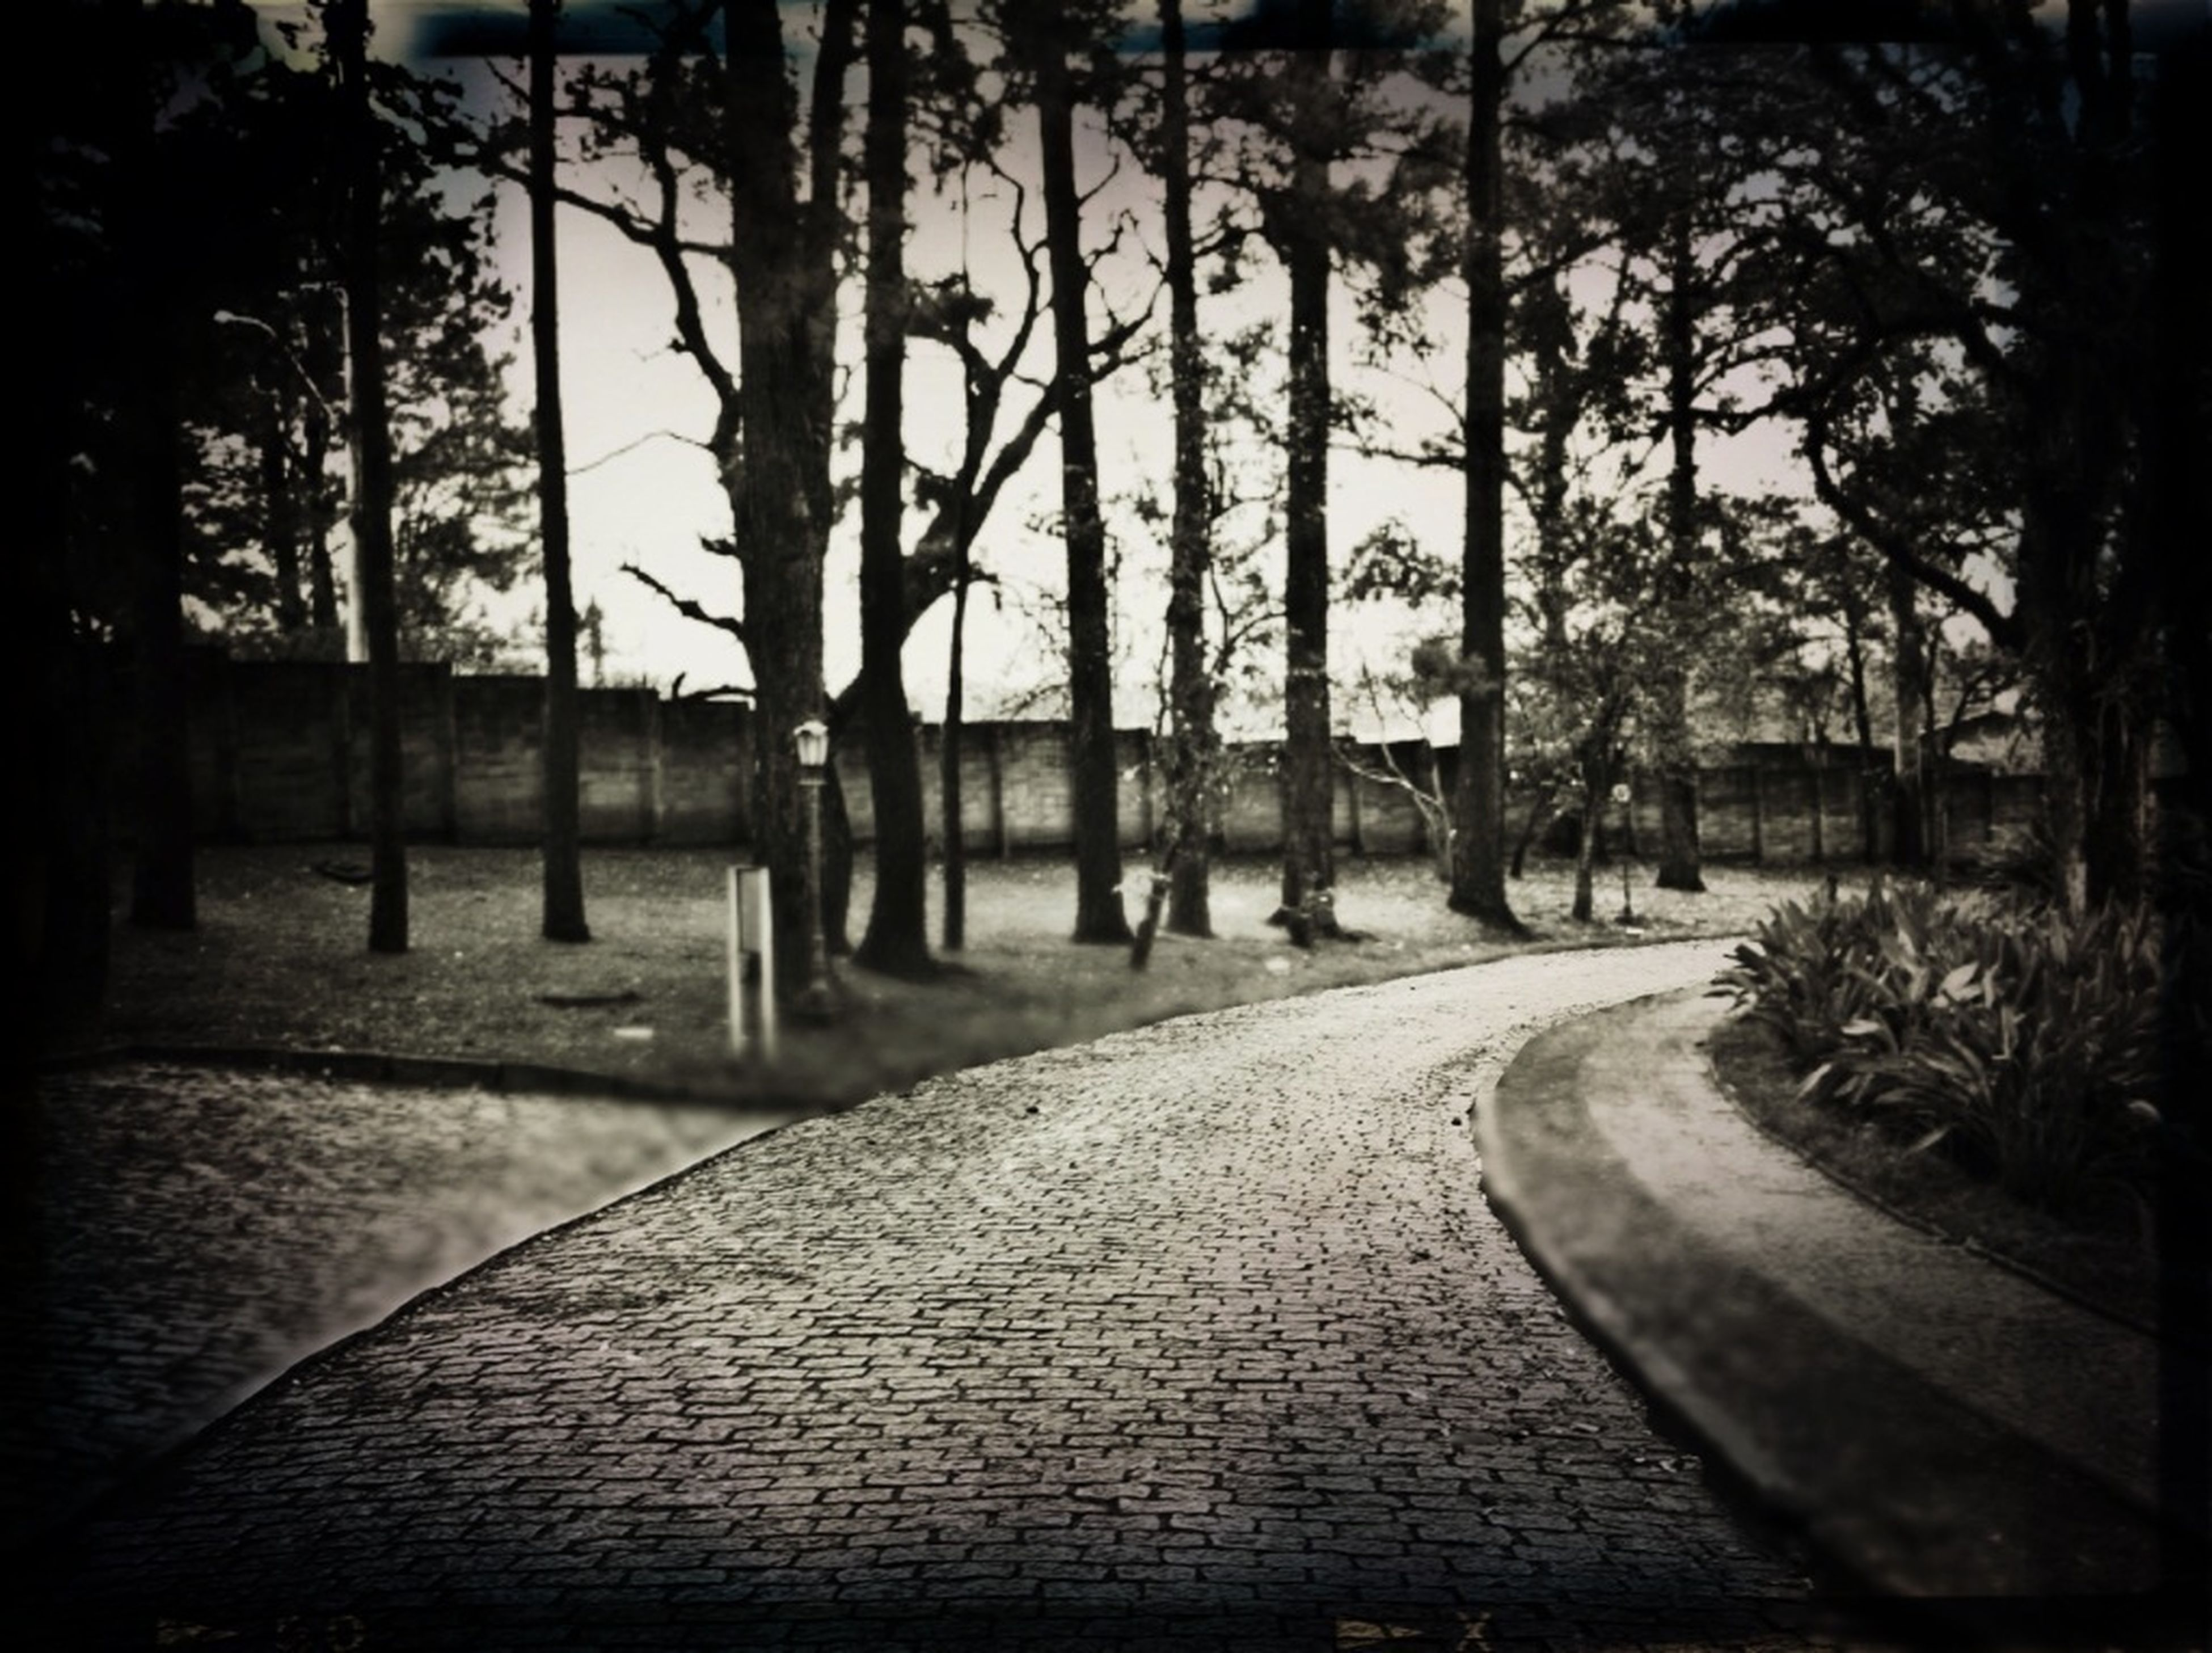 the way forward, tree, transportation, diminishing perspective, vanishing point, road, empty, long, street, tranquility, footpath, sunlight, nature, no people, outdoors, growth, empty road, walkway, absence, street light